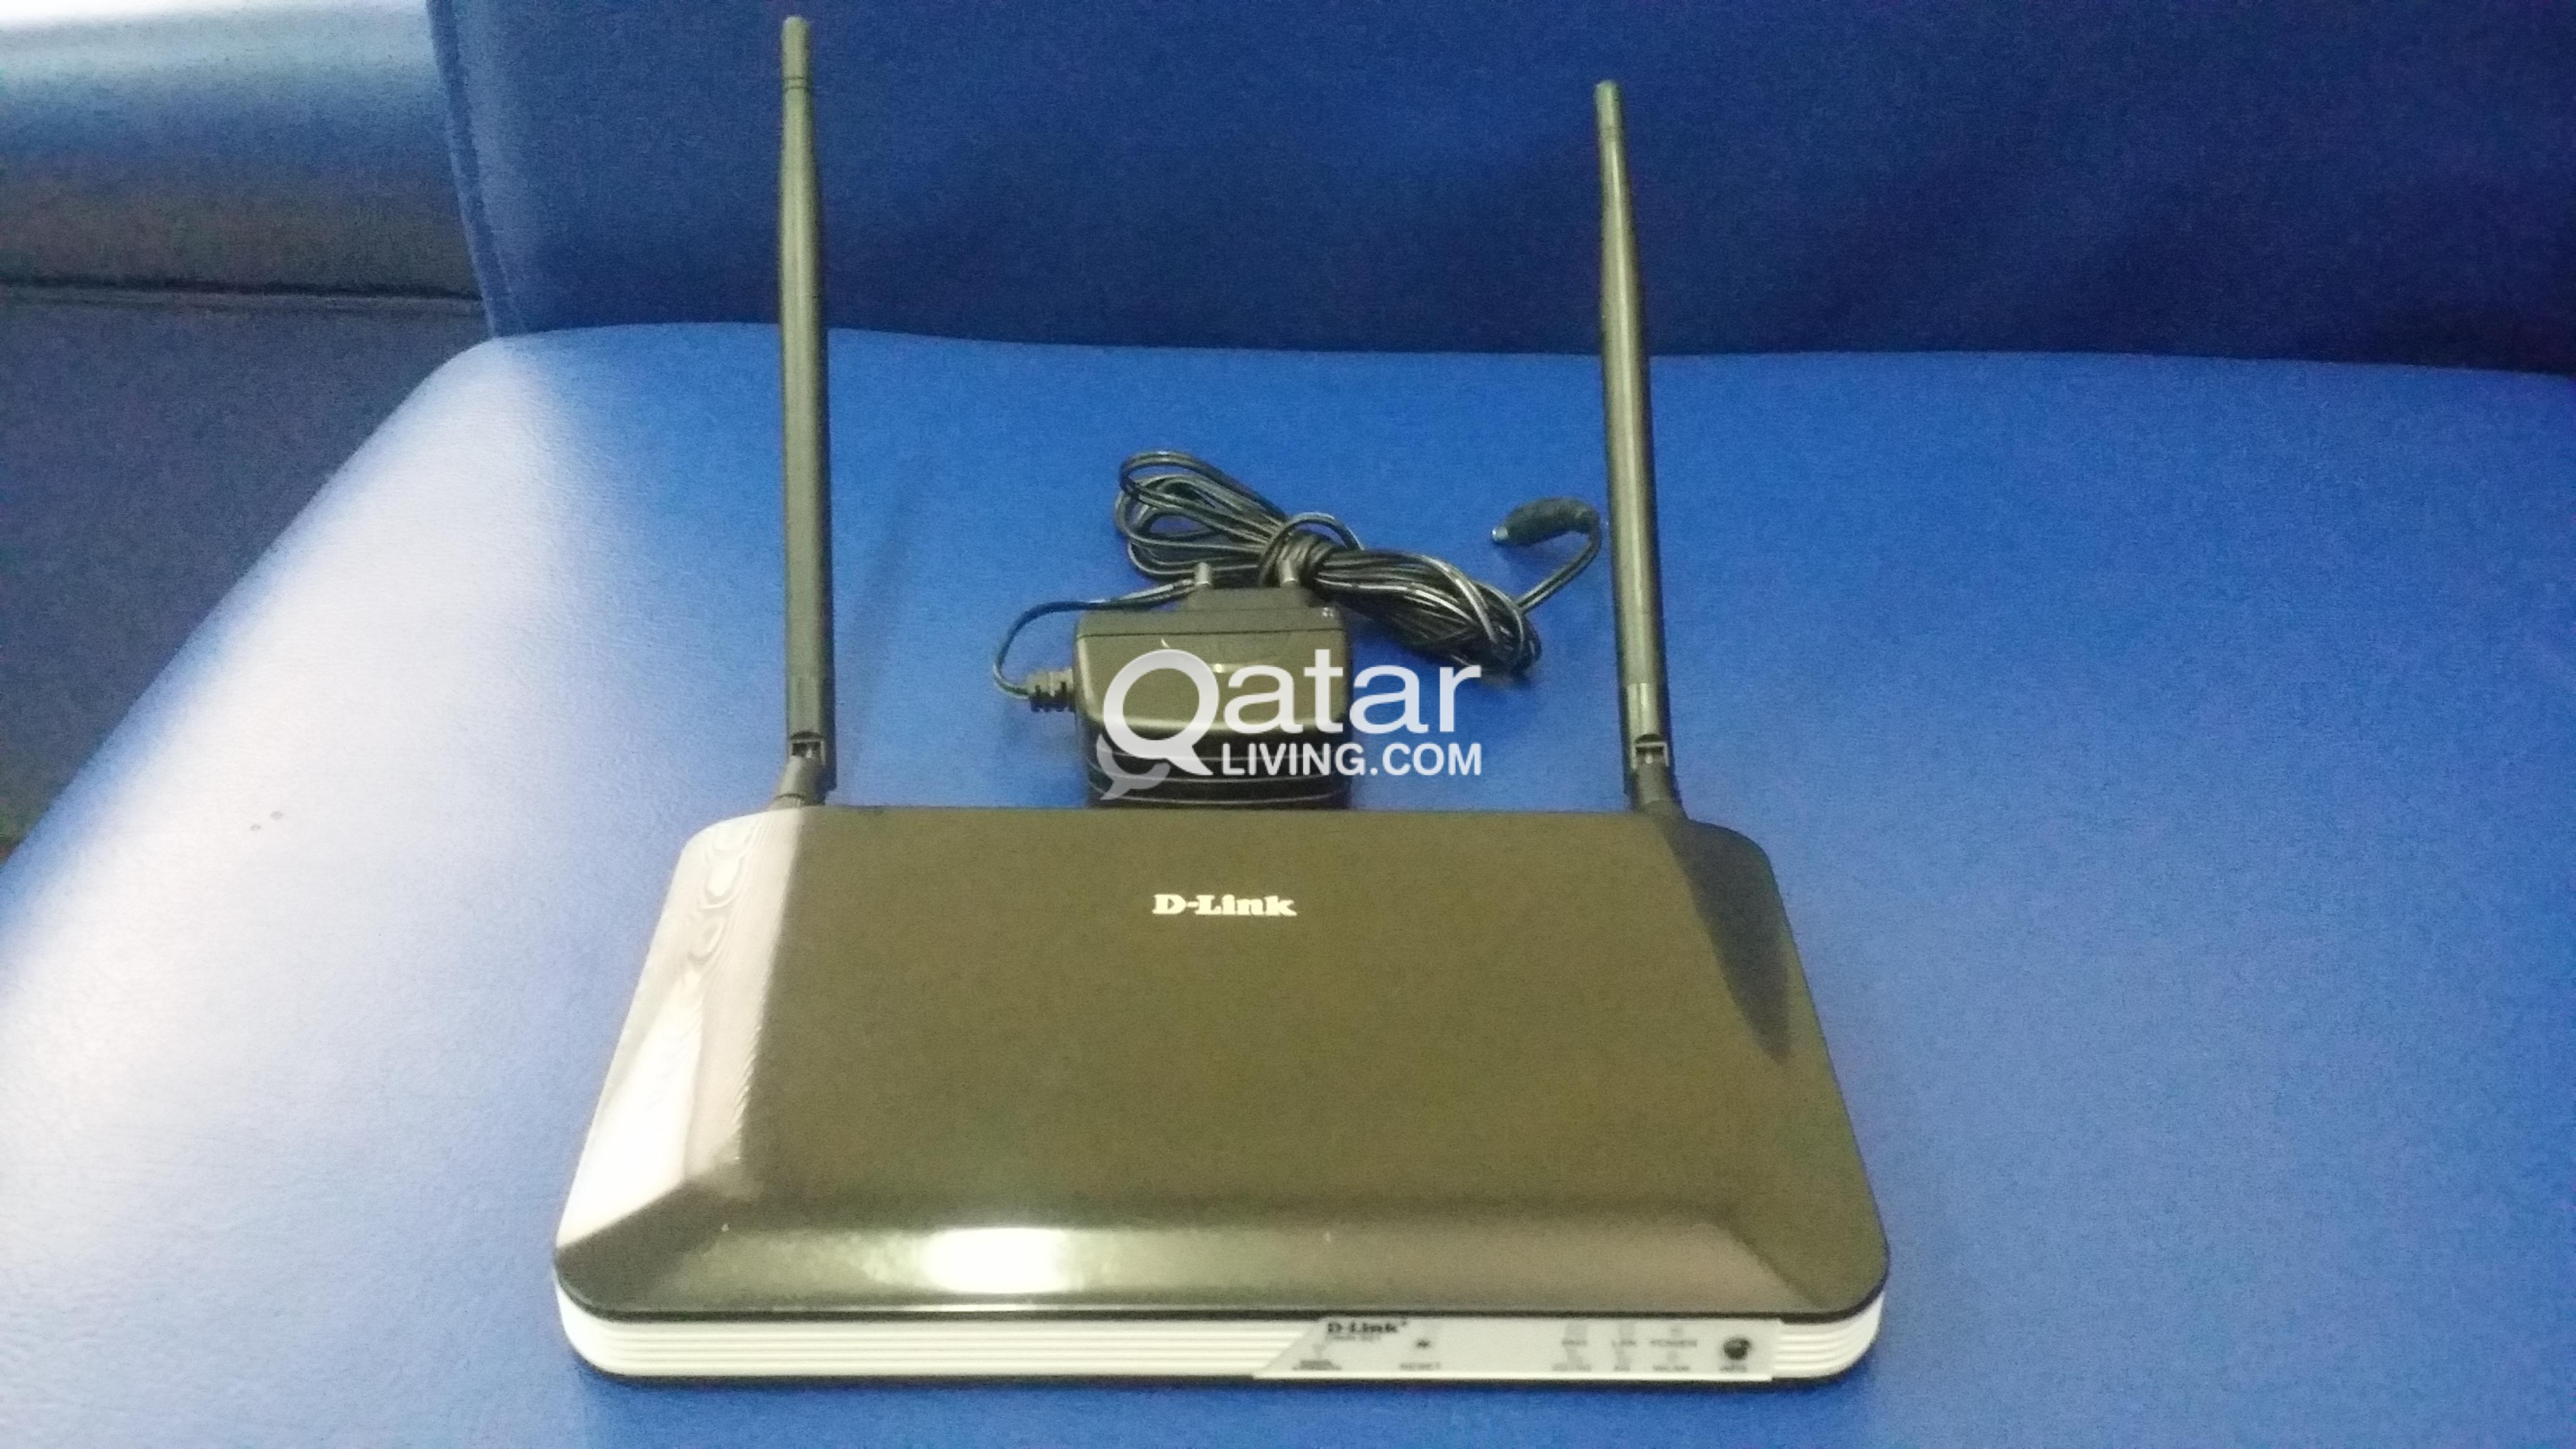 D-Link Wifi Router 4G with Sim card slot-DWR921 | Qatar Living